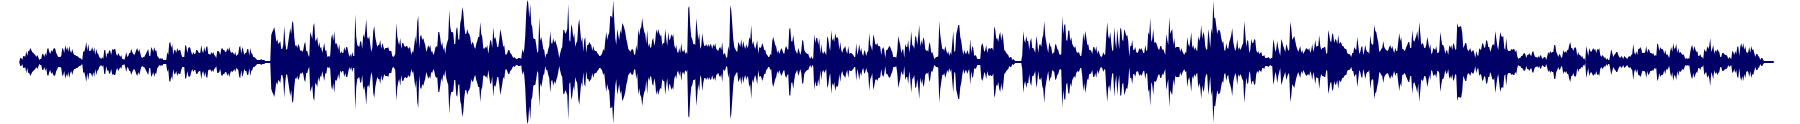 waveform of track #70356